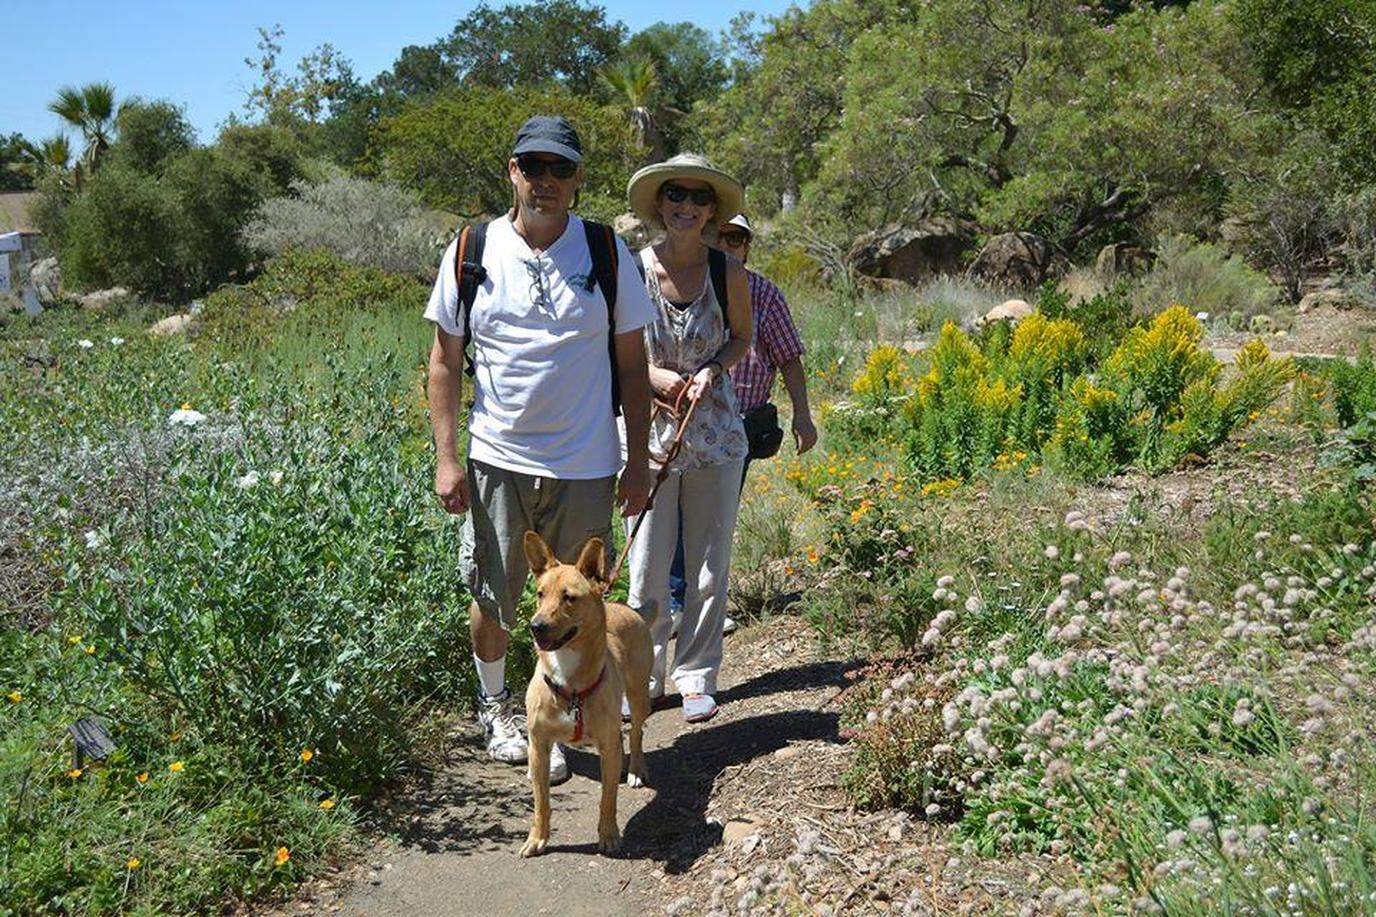 A Couple Walks Their Dog Through a Pet-Friendly Botanical Garden in Santa Barbara.